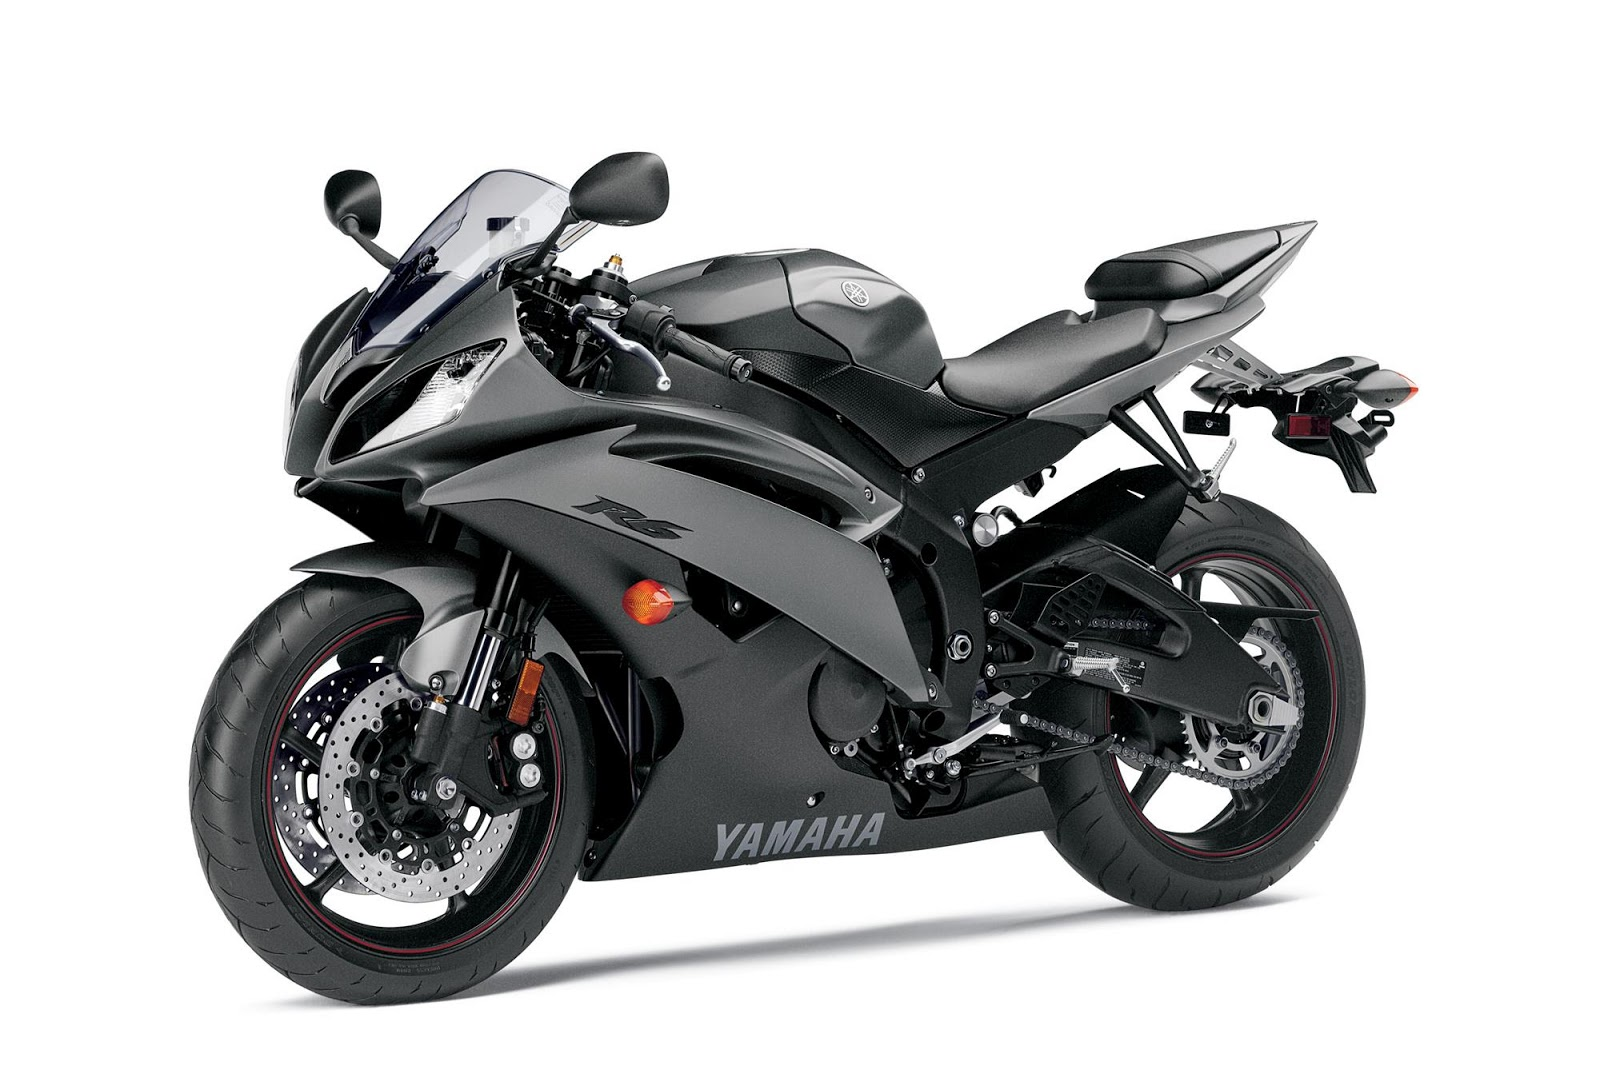 Yamaha yzf r6 motorcycle is using 600 cc engine 599cc four cylinder dohc